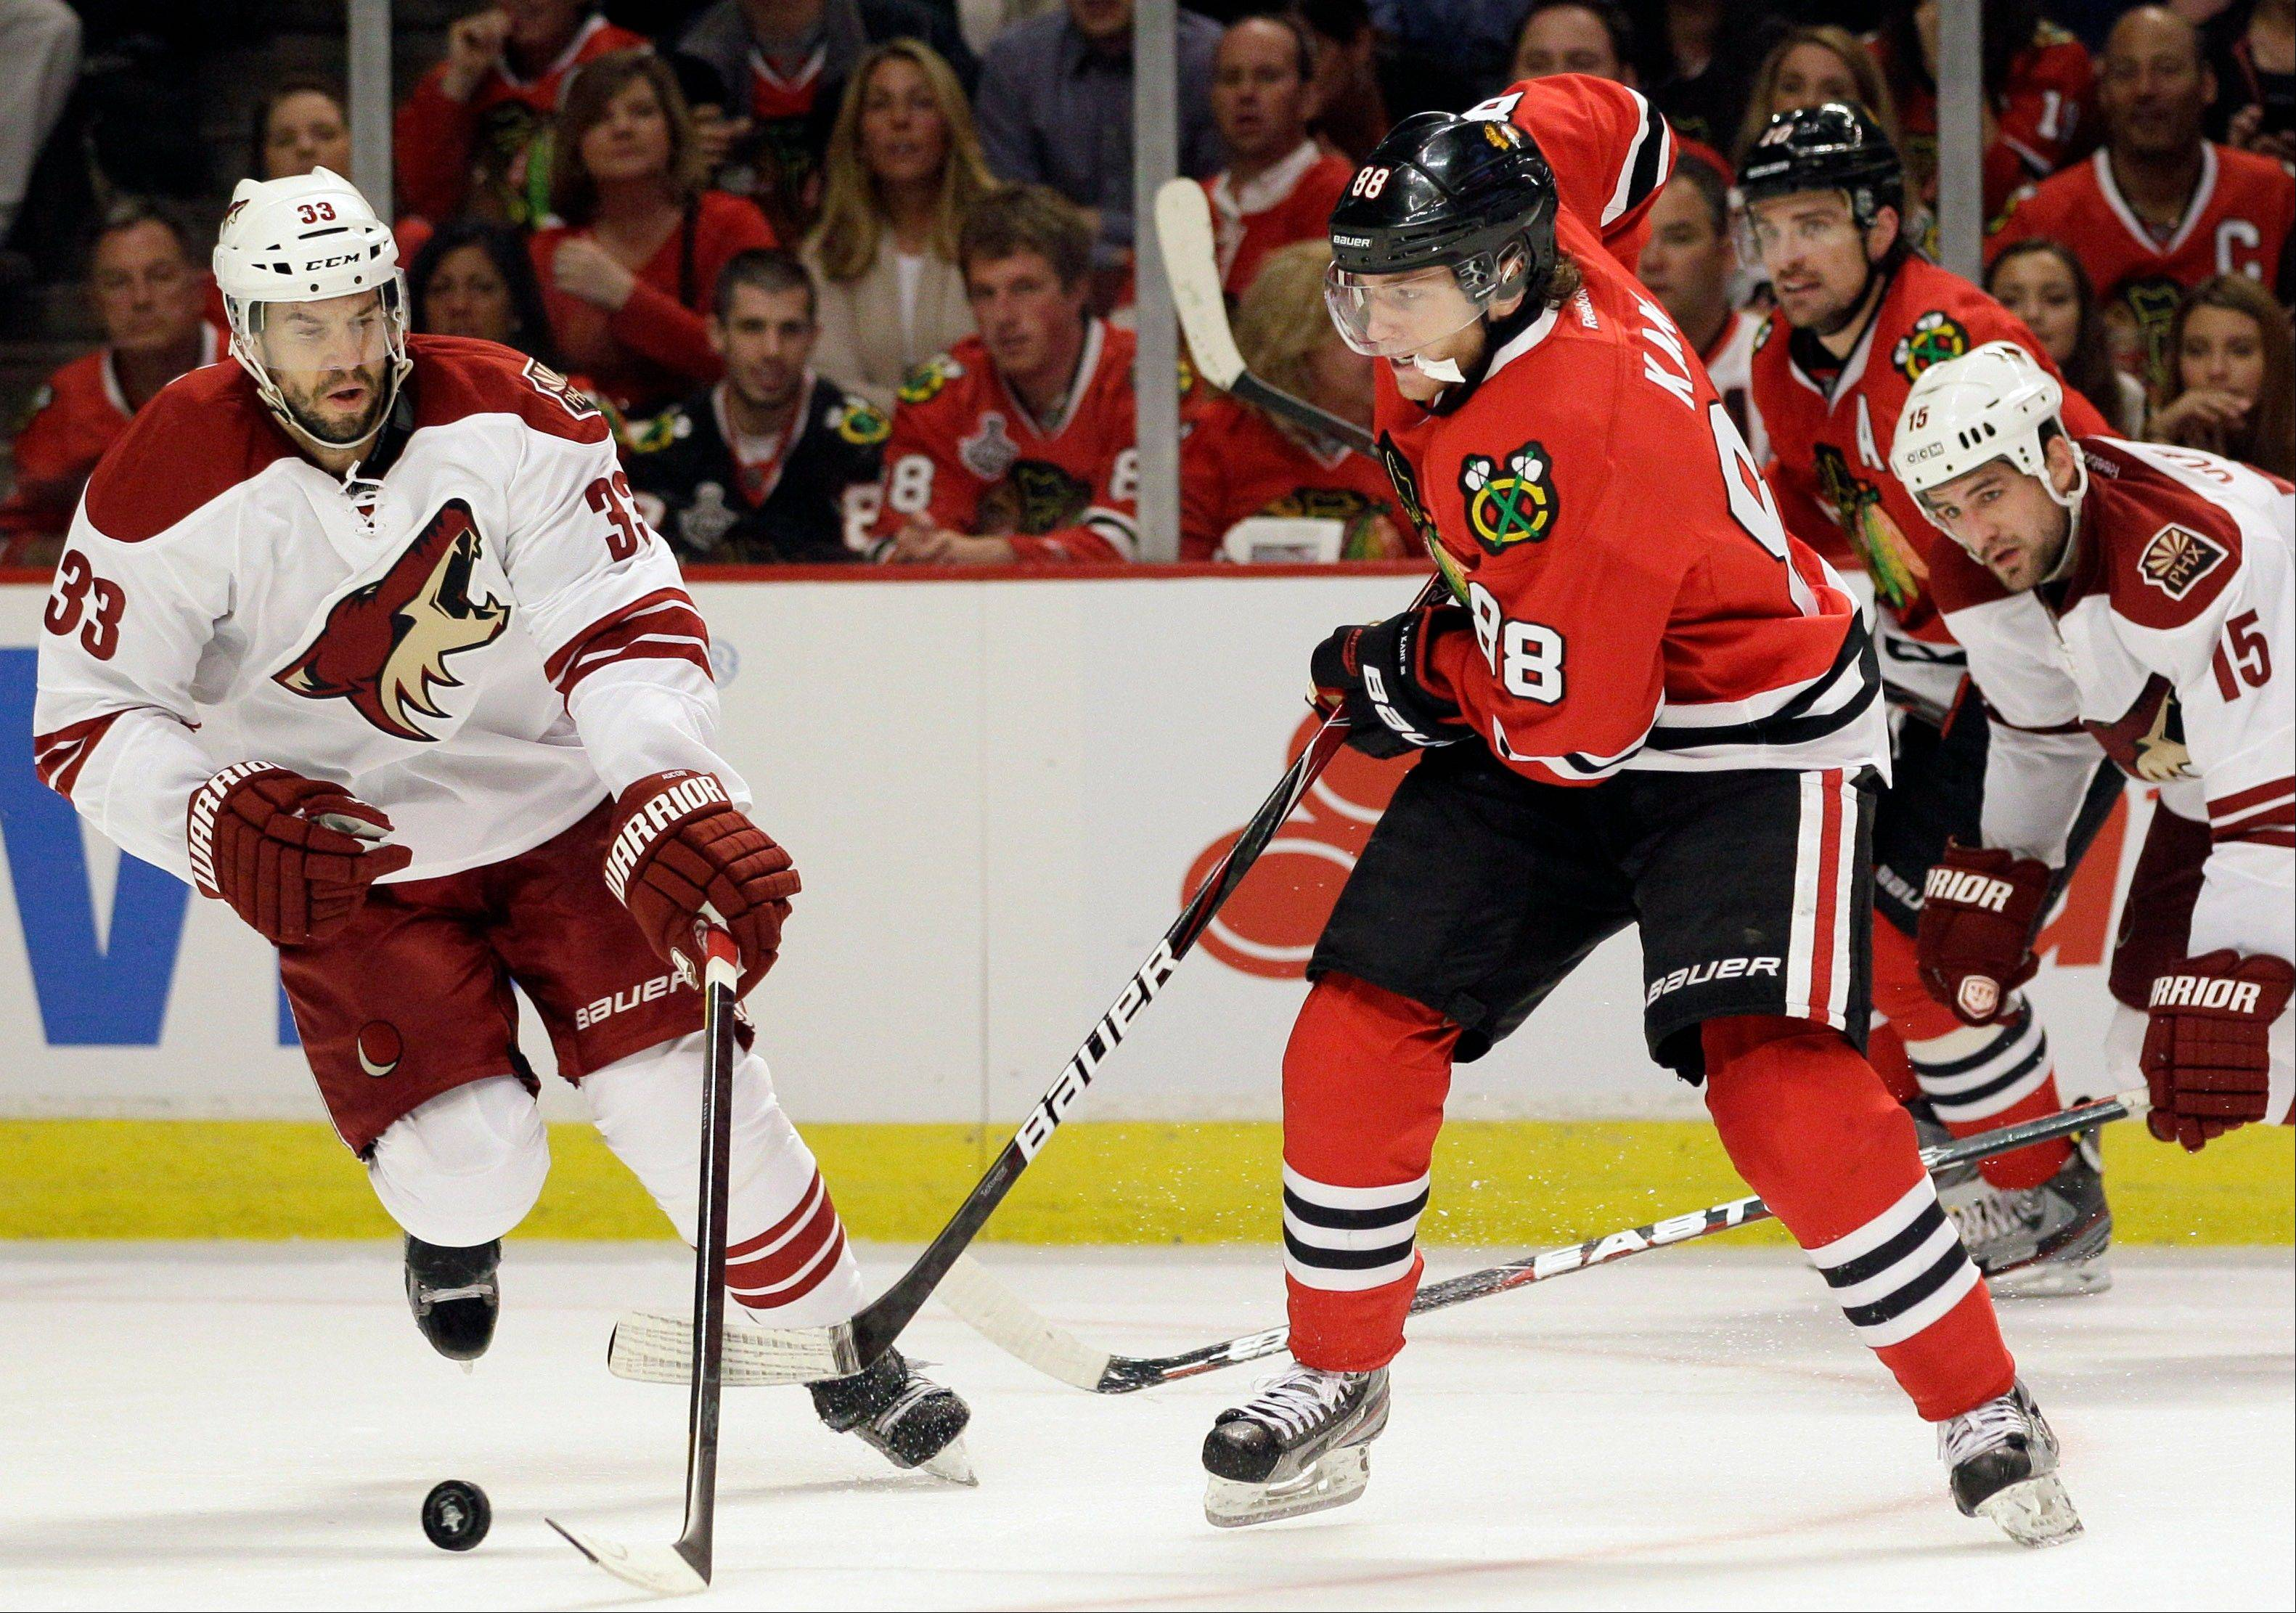 Chicago Blackhawks' Patrick Kane (88) passes the puck against Phoenix Coyotes' Adrian Aucoin (33) during the second period of Game 4 of an NHL hockey Stanley Cup first-round playoff series in Chicago, Thursday, April 19, 2012.